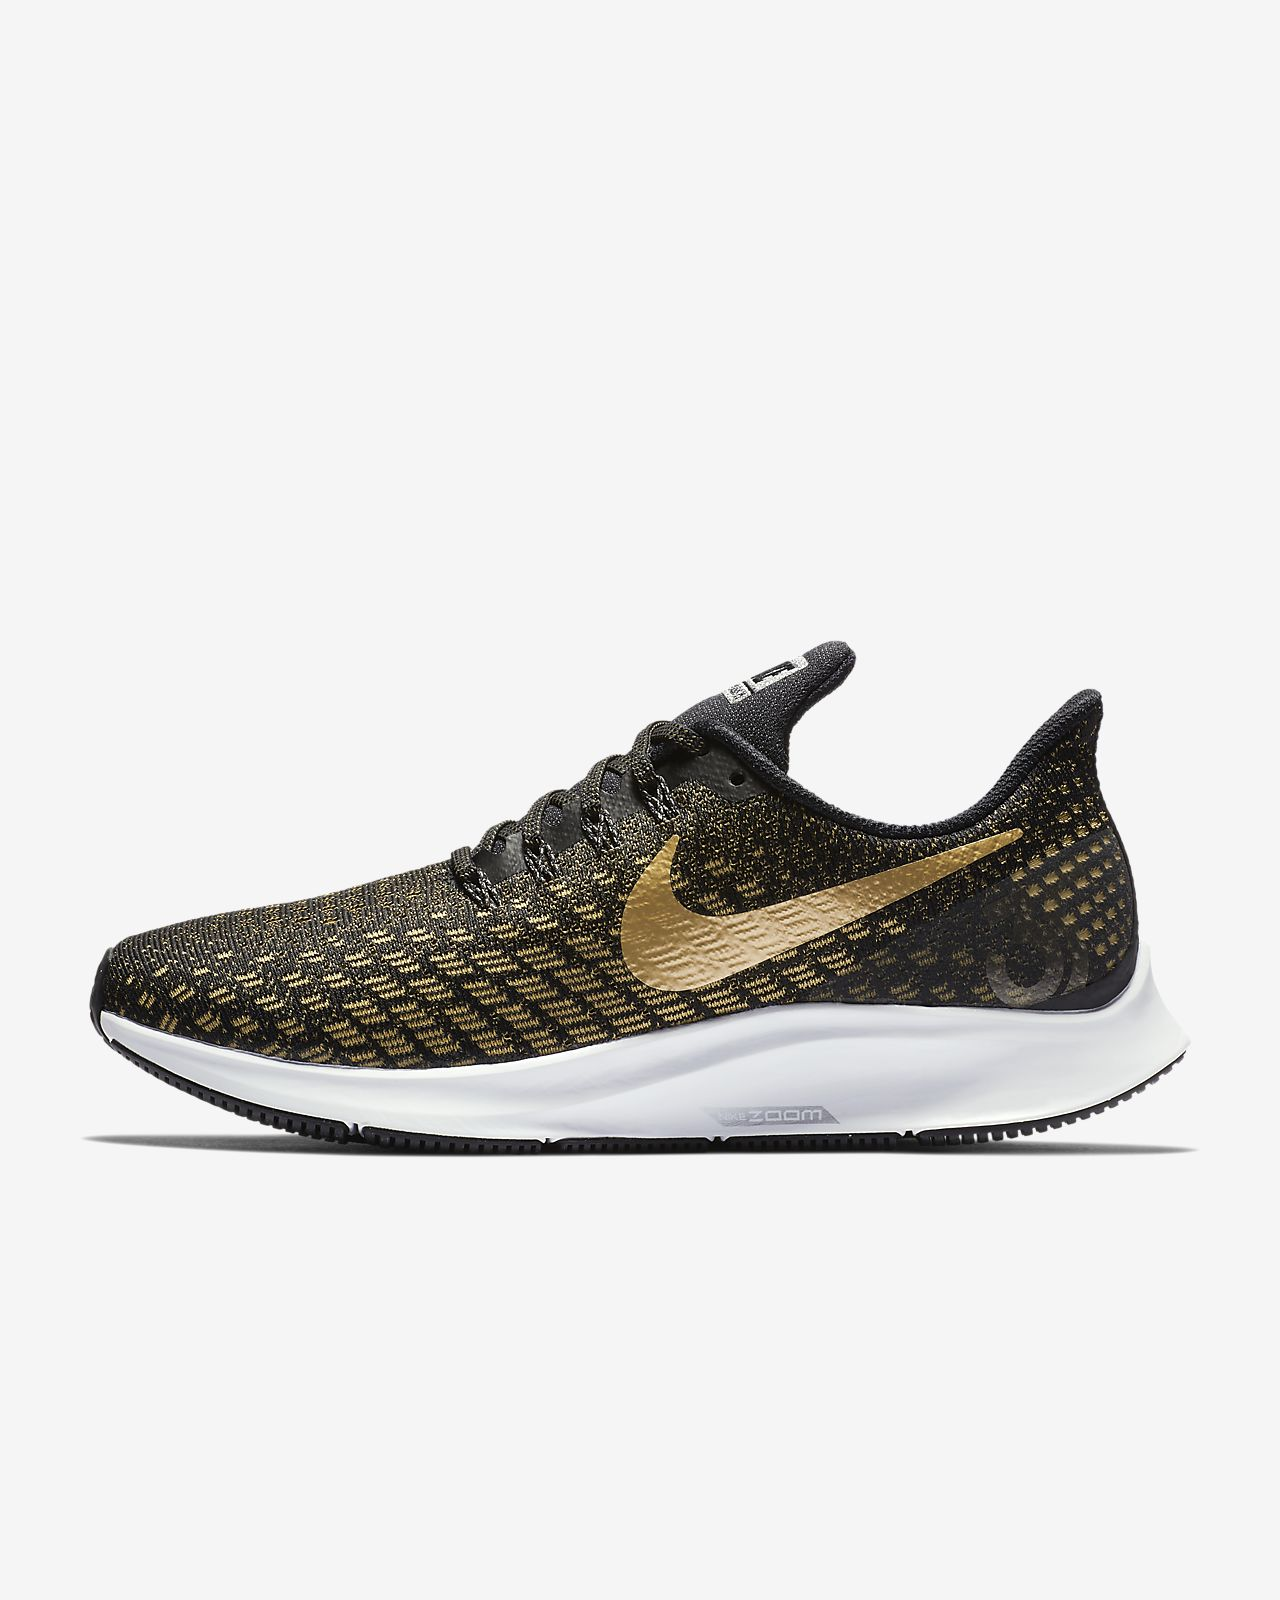 new arrival 7fea6 1403e ... Nike Air Zoom Pegasus 35 Metallic Women s Running Shoe ...